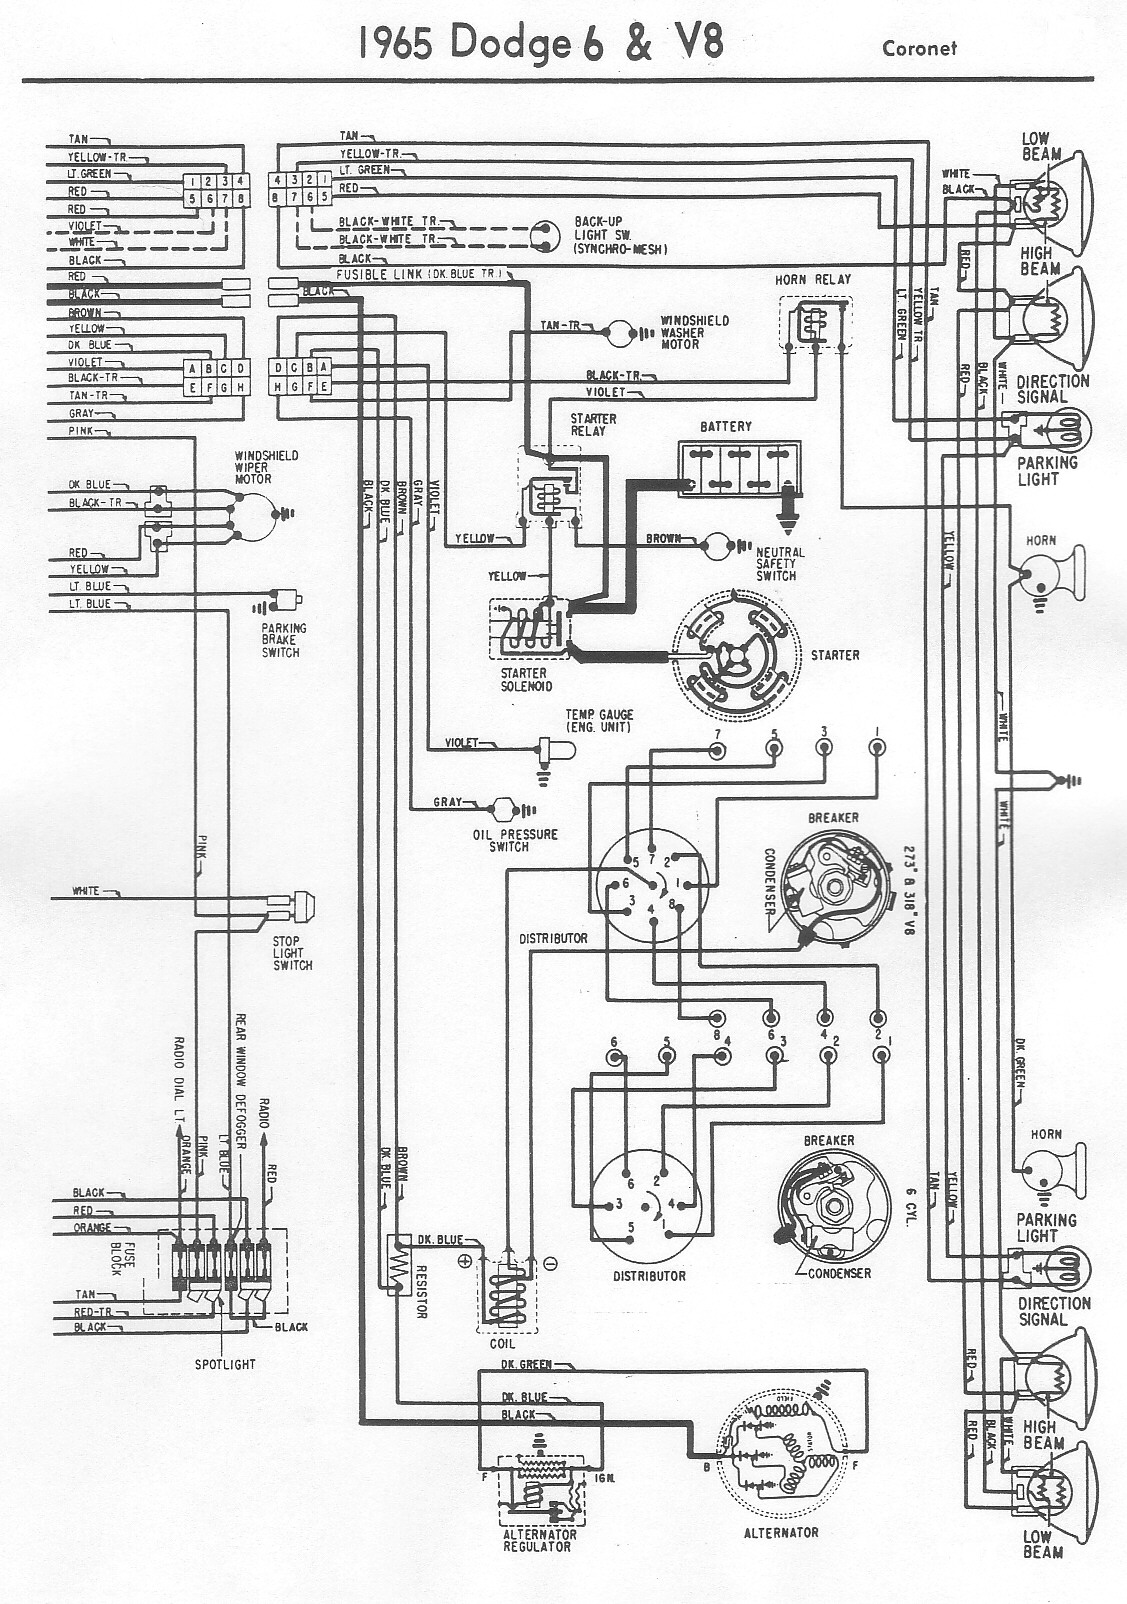 hight resolution of 70 dart wiring diagram wiring diagram blogs dodge challenger wiring diagram 69 dart wiring diagram